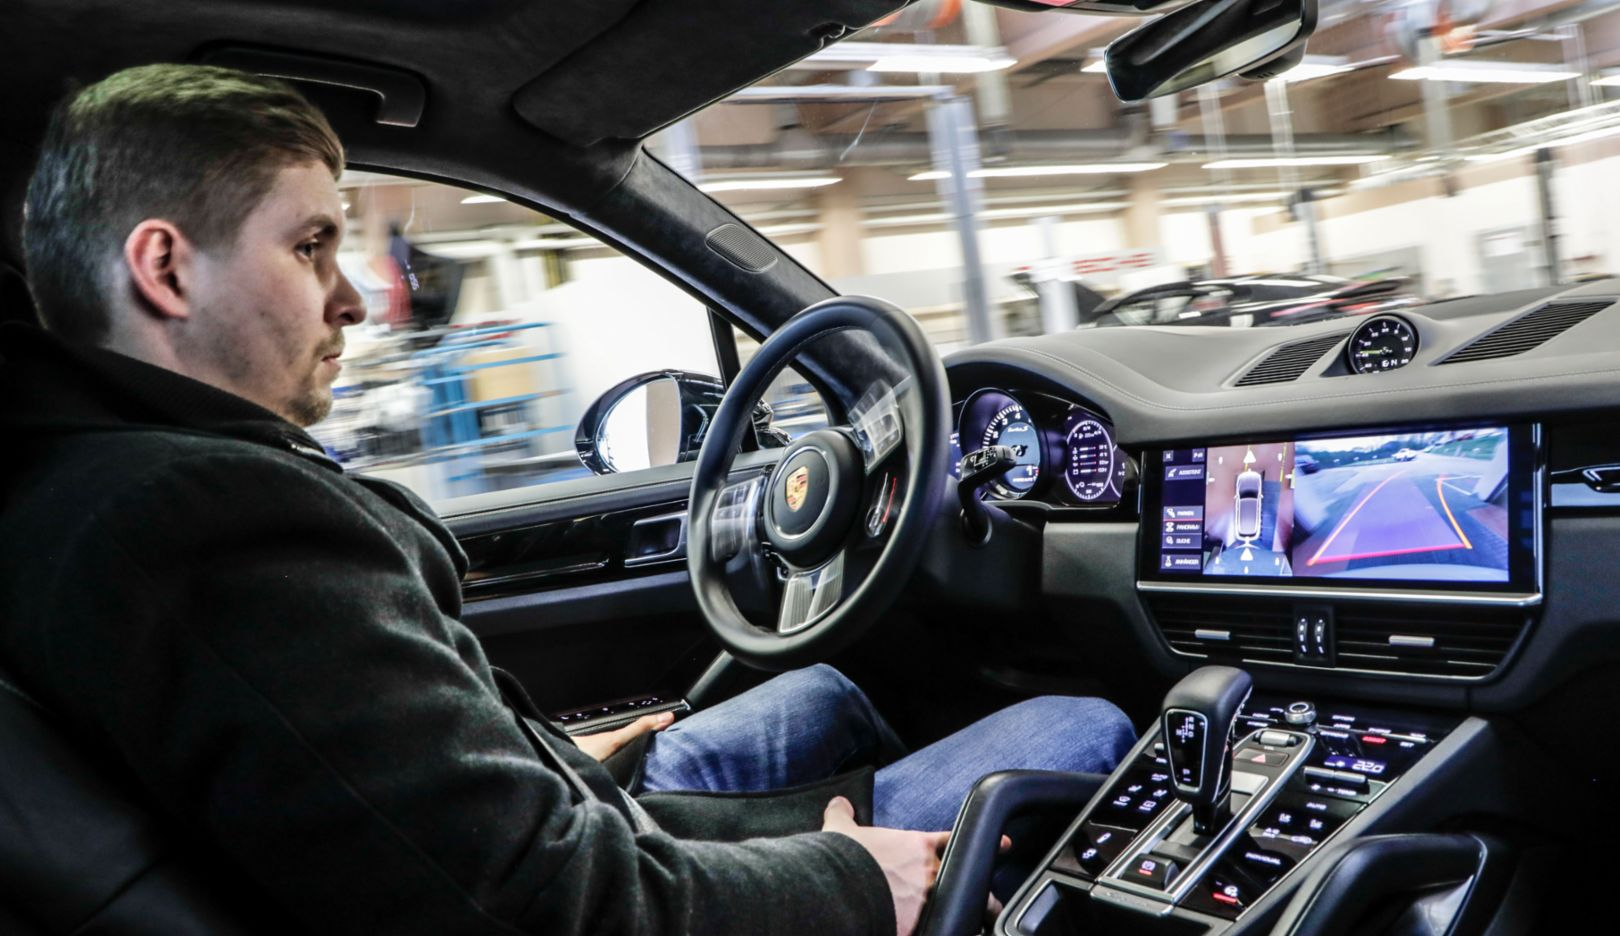 Porsche shows autonomous driving in the workshop